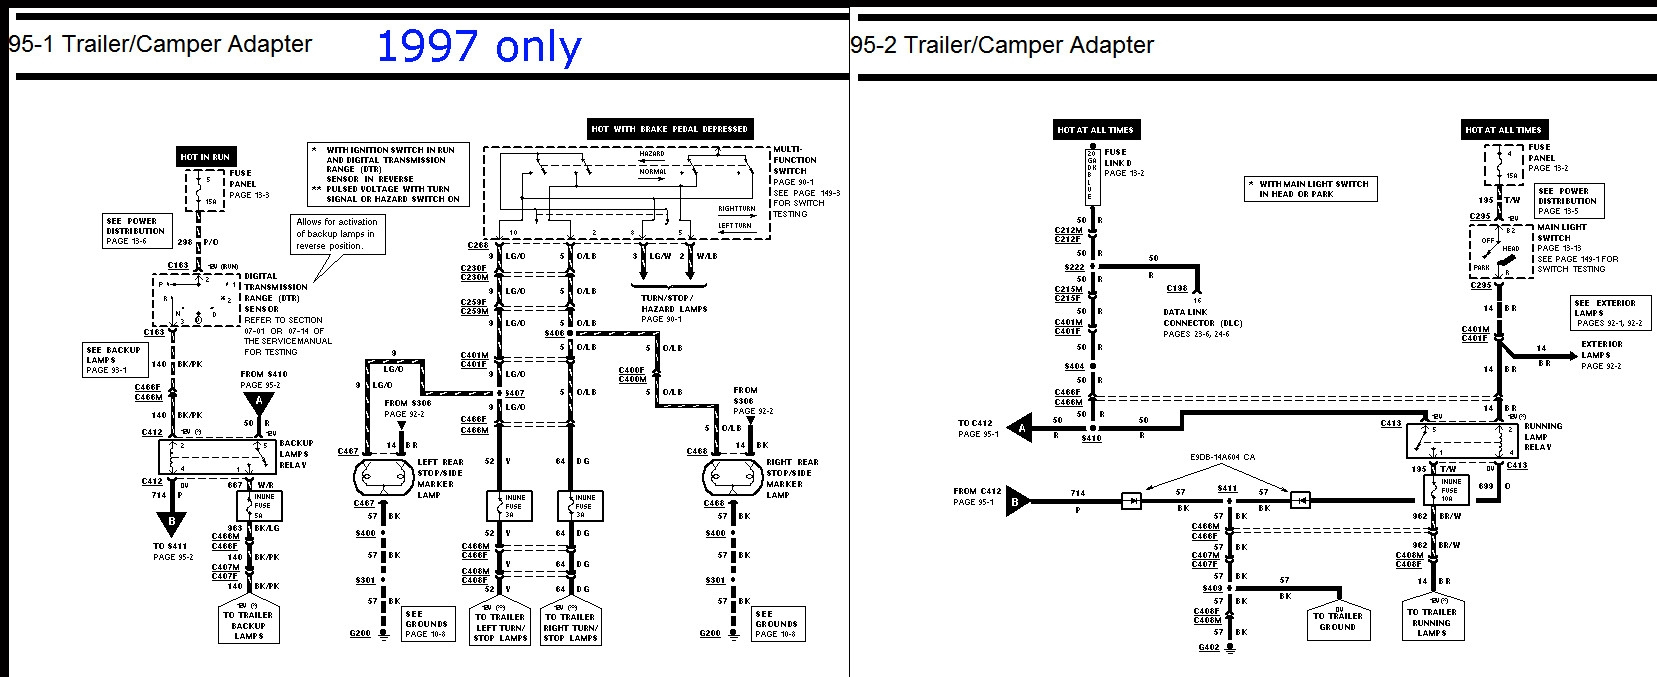 97 F150 Trailer Wiring Diagram | Free Wiring Diagram - Trailer Wiring Diagram Ford